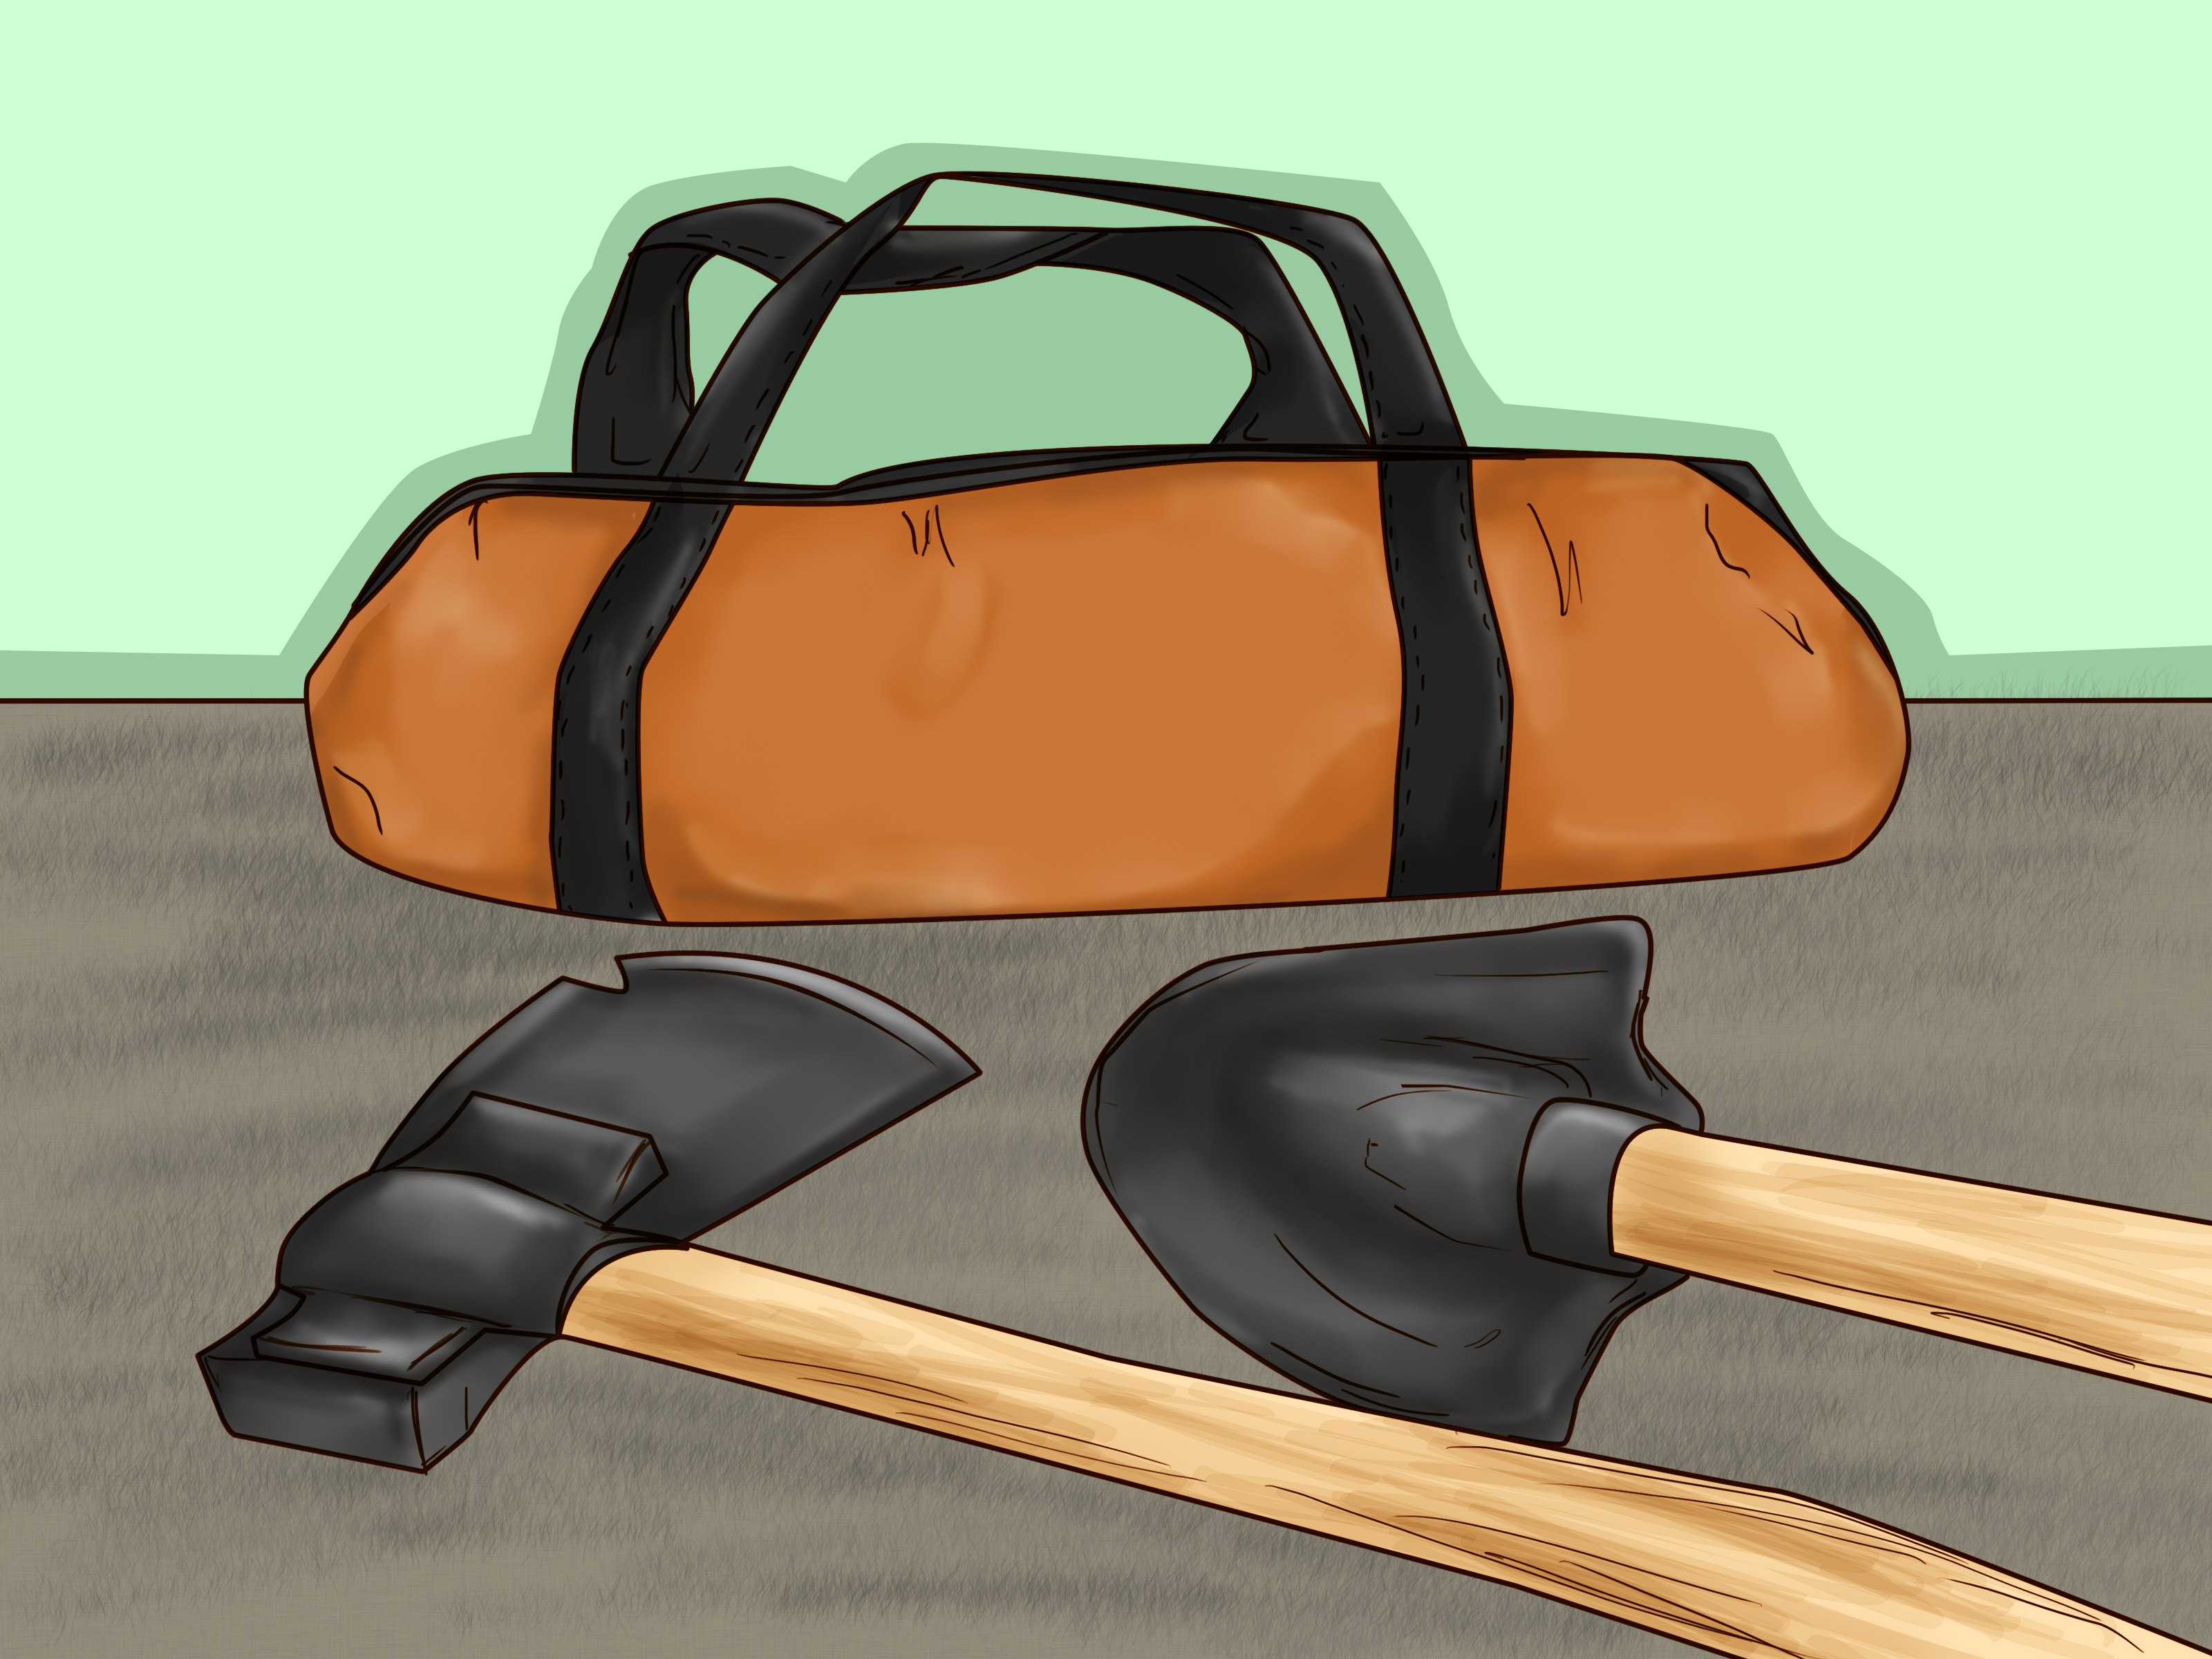 How To Make A Wilderness Survival Kit 14 Steps With